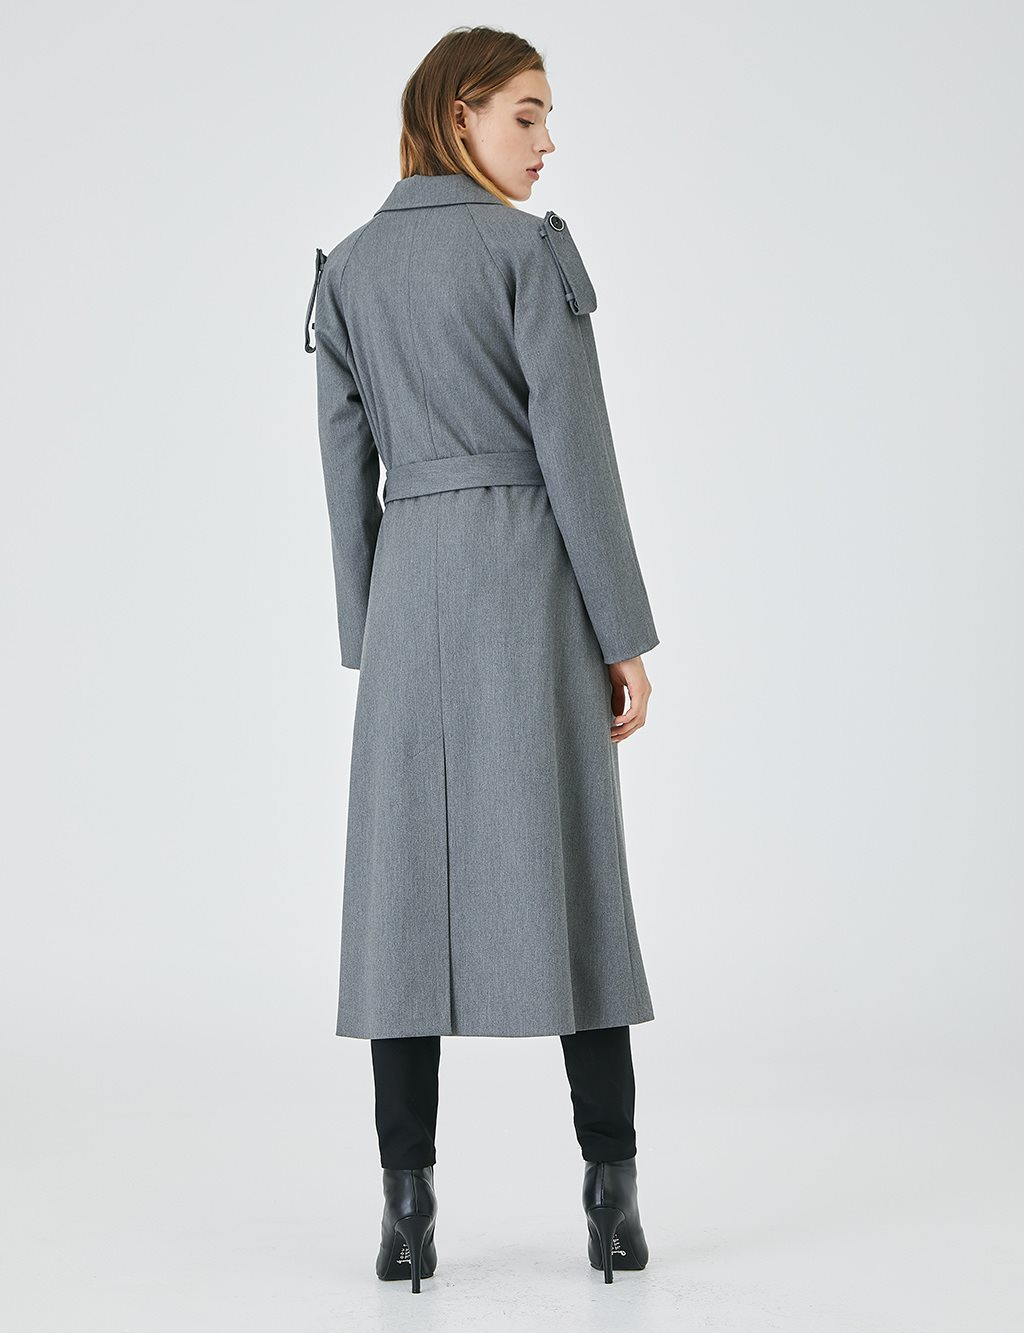 Epaulet Double Breasted Trench Coat A20 14002 Smoked